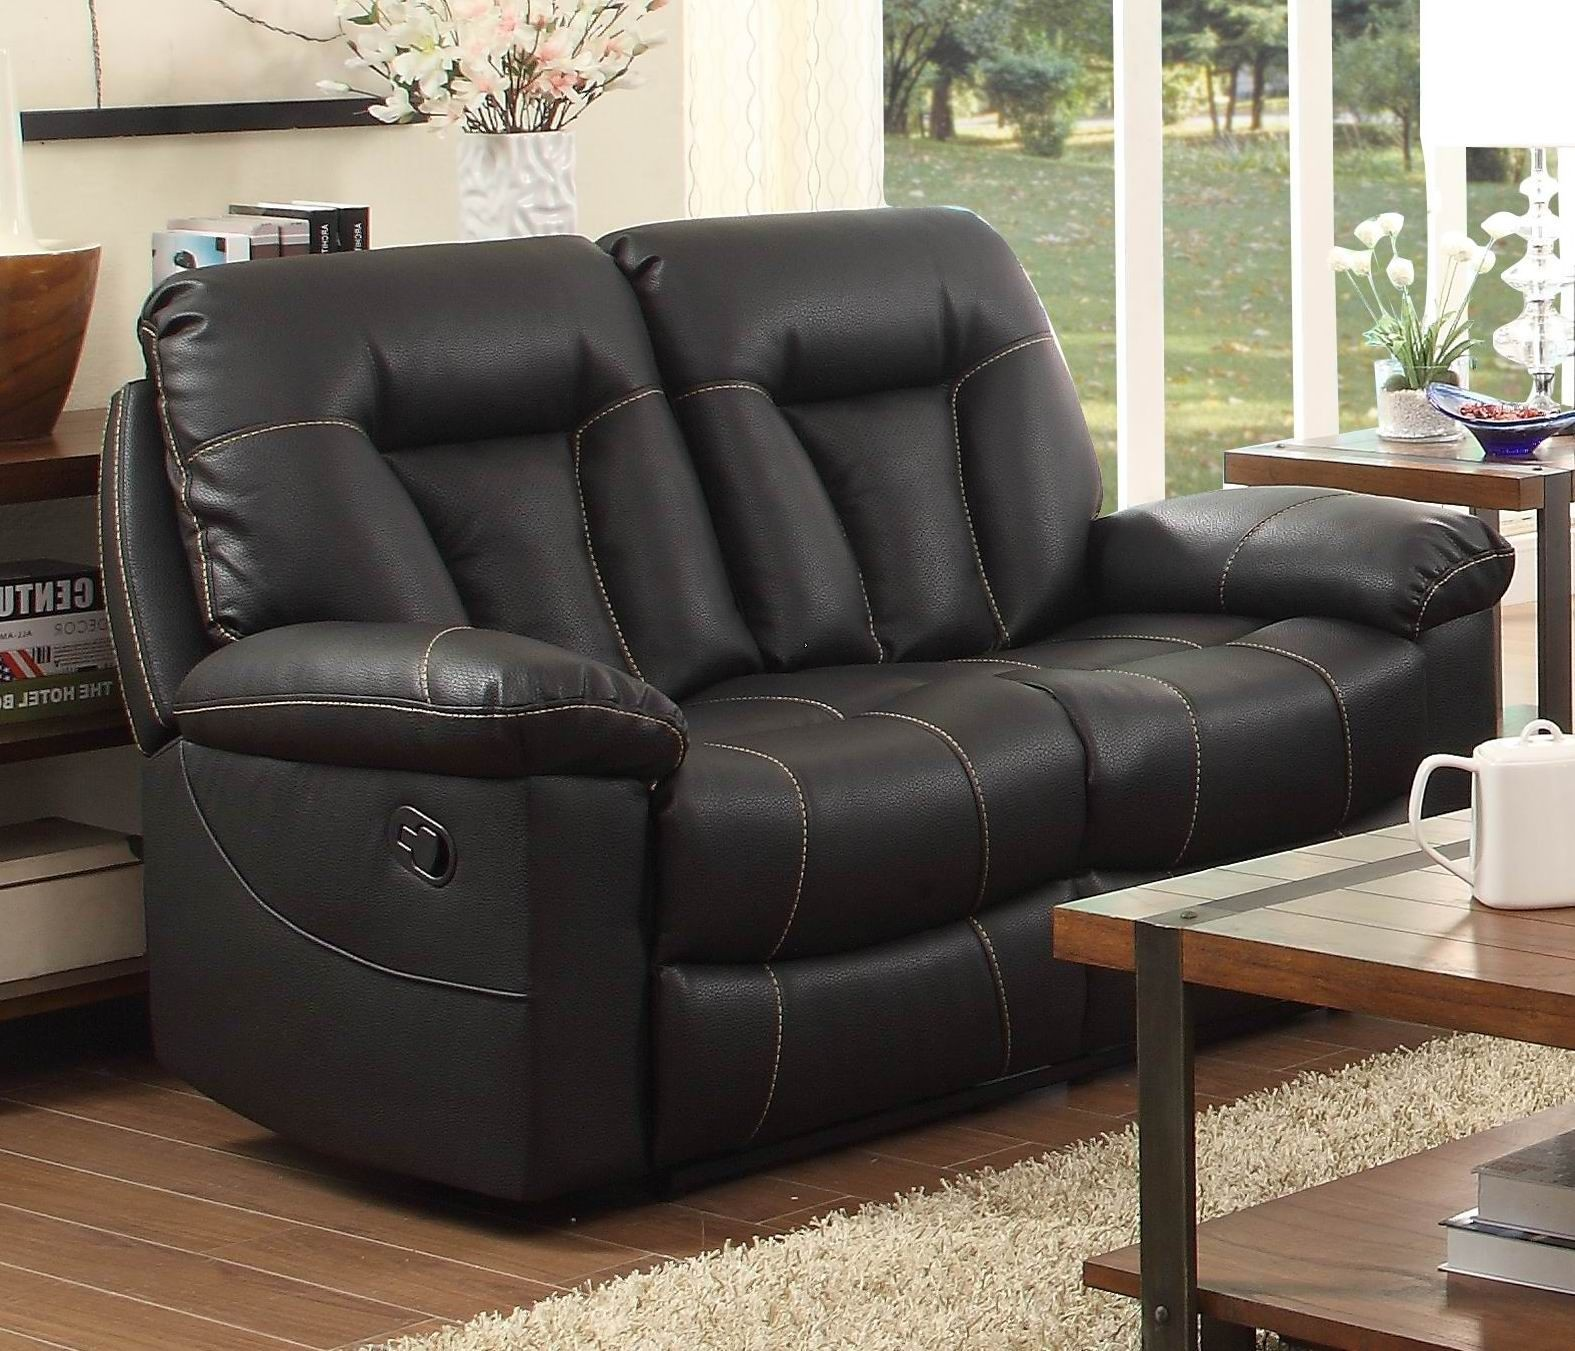 Cade Black Double Reclining Loveseat 8512blk 2 Homelegance